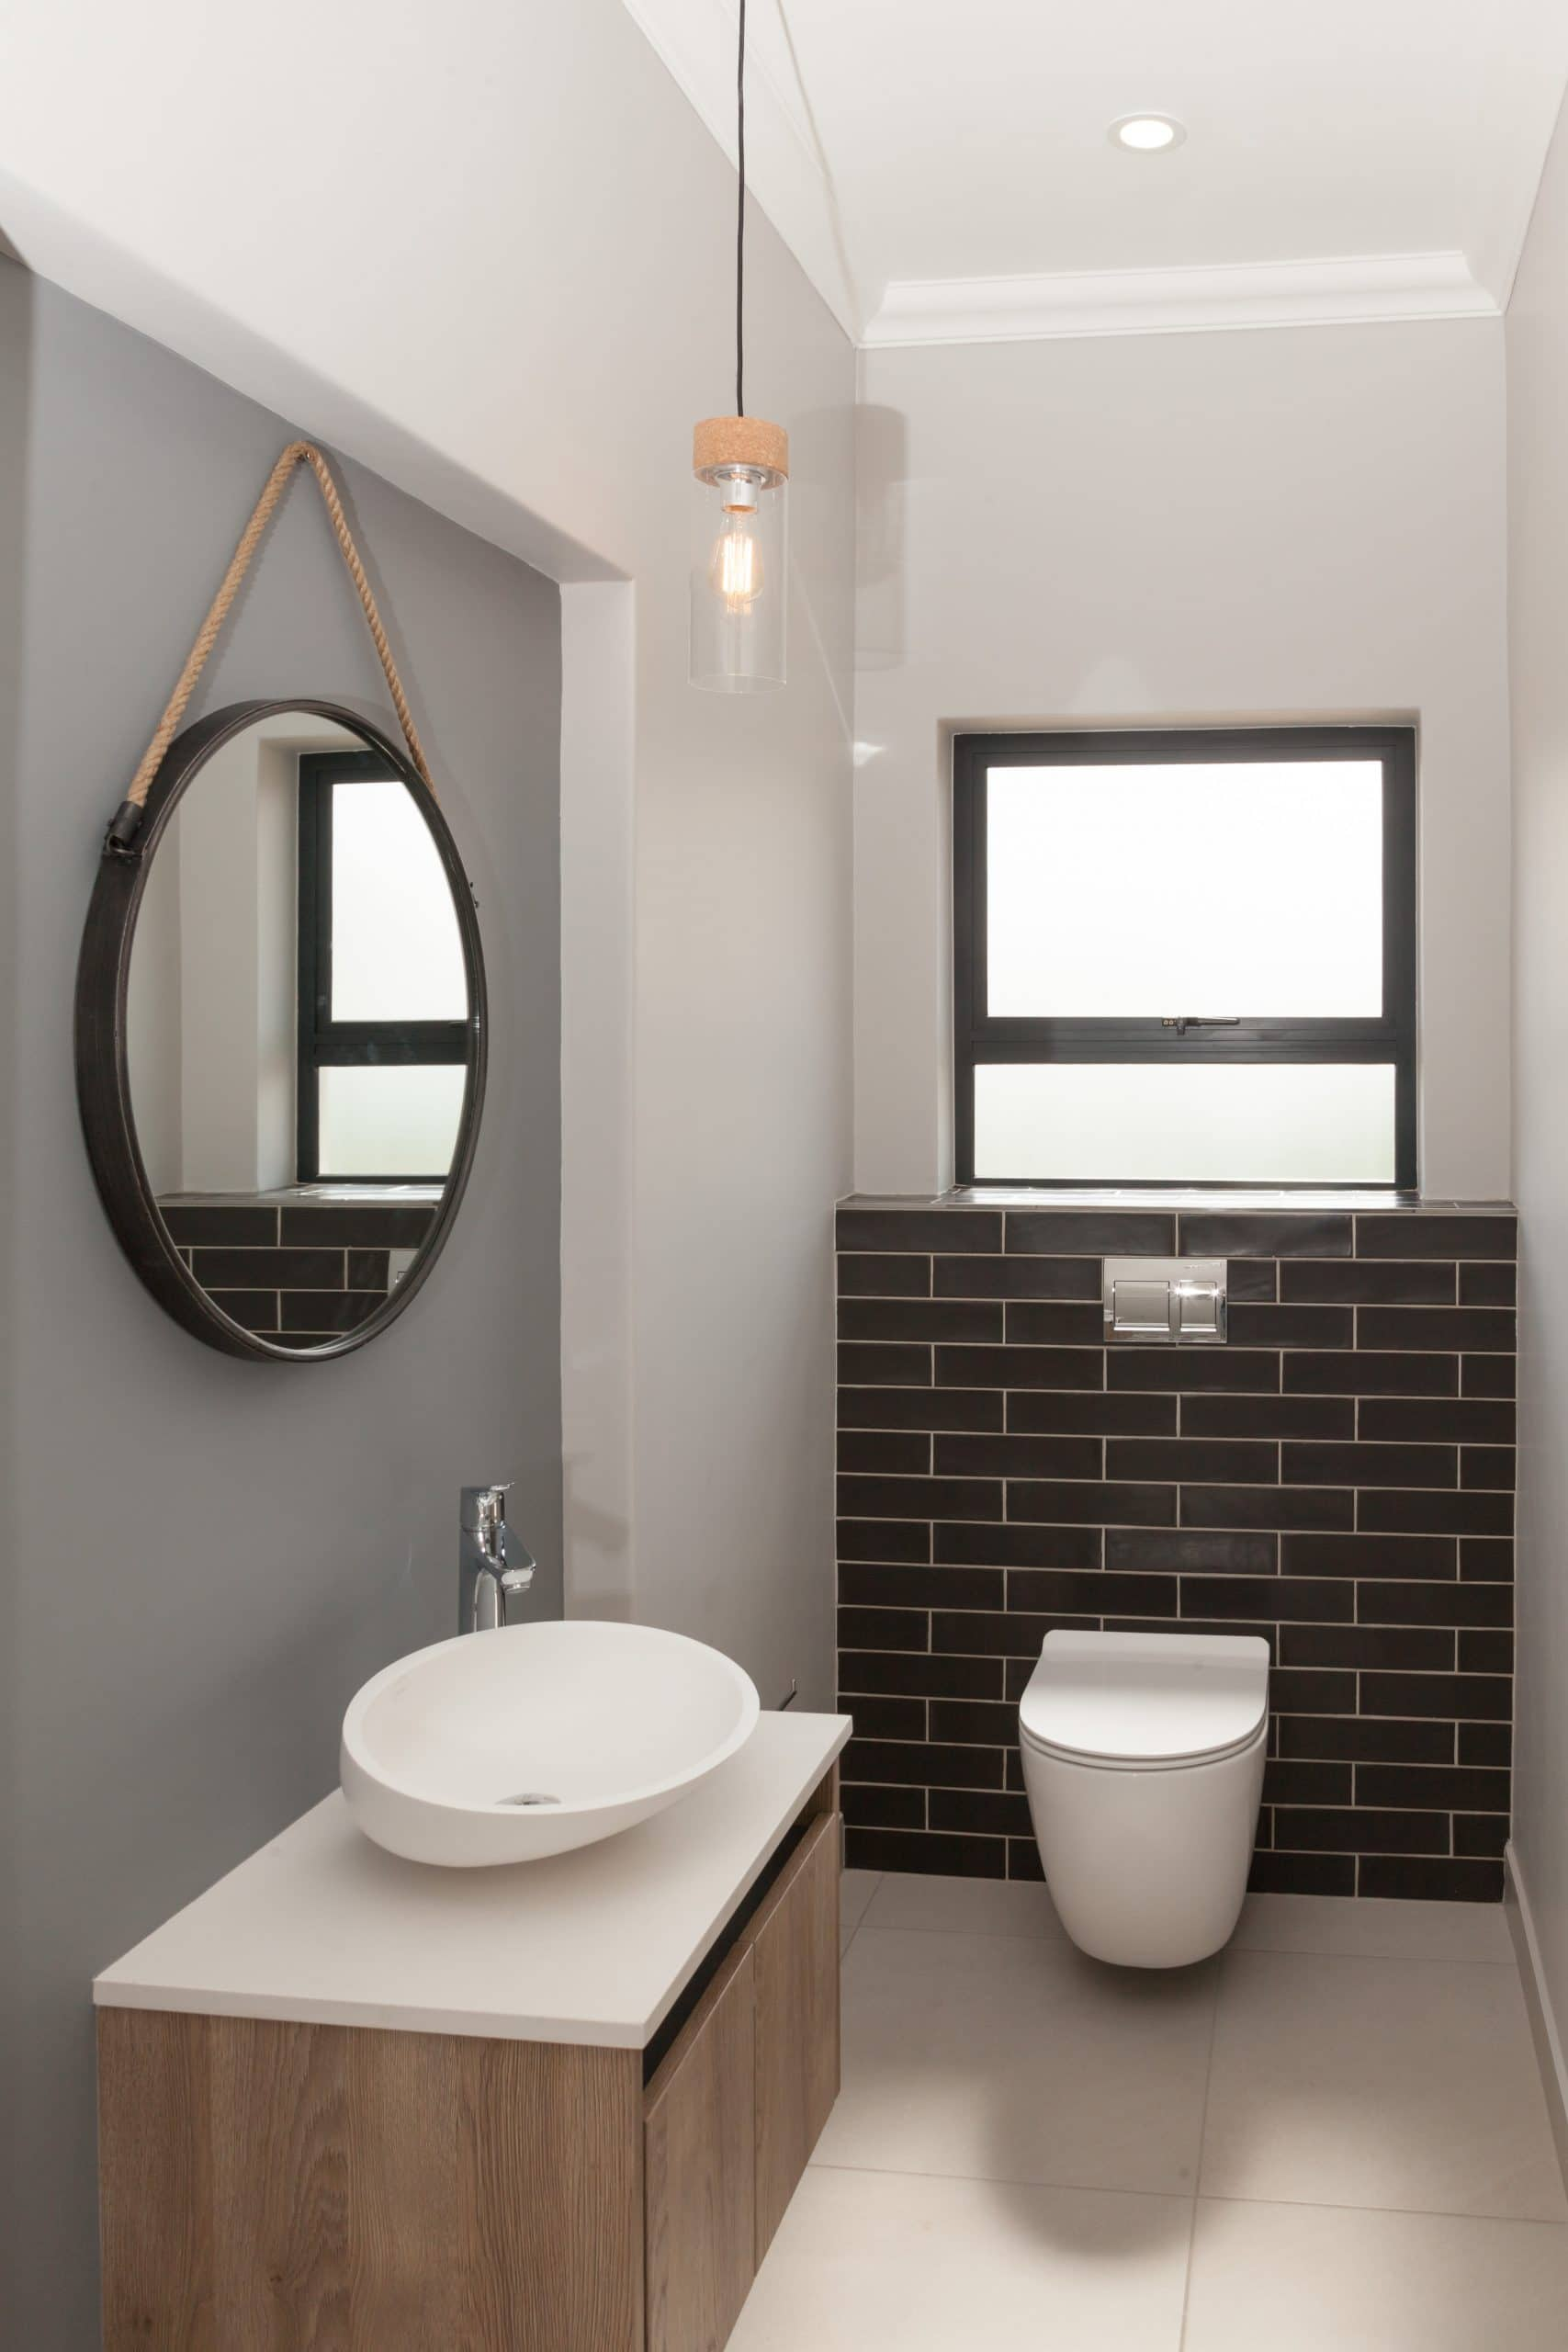 oval designer basin with hansgrohe basin mount taps grey slated subway tiles with hanging toilet